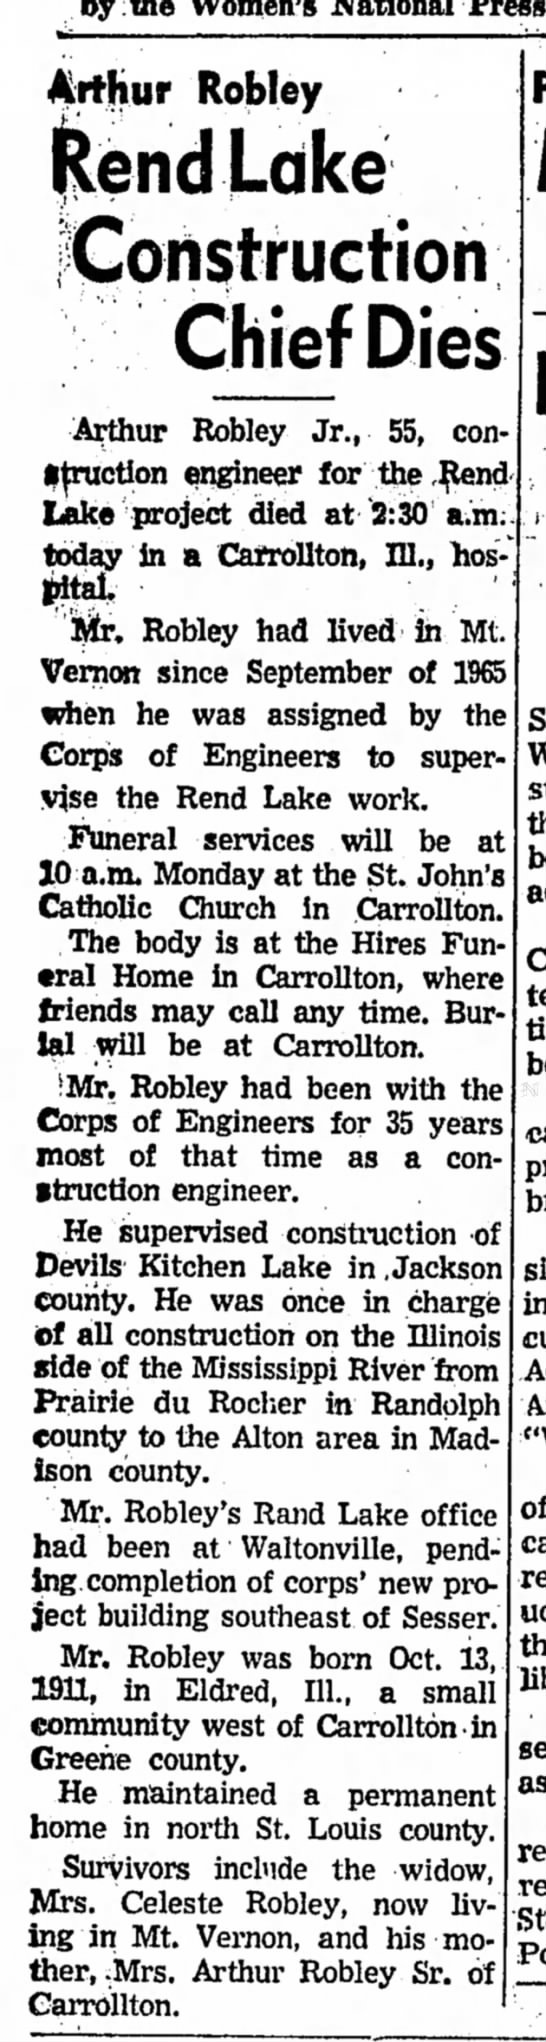 Arthur Robley, Jr. - Obit. Mt. Vernon Register-News, Illinois-4 May 1967, page 1 - by the Women's National Press Aifhur Robley...